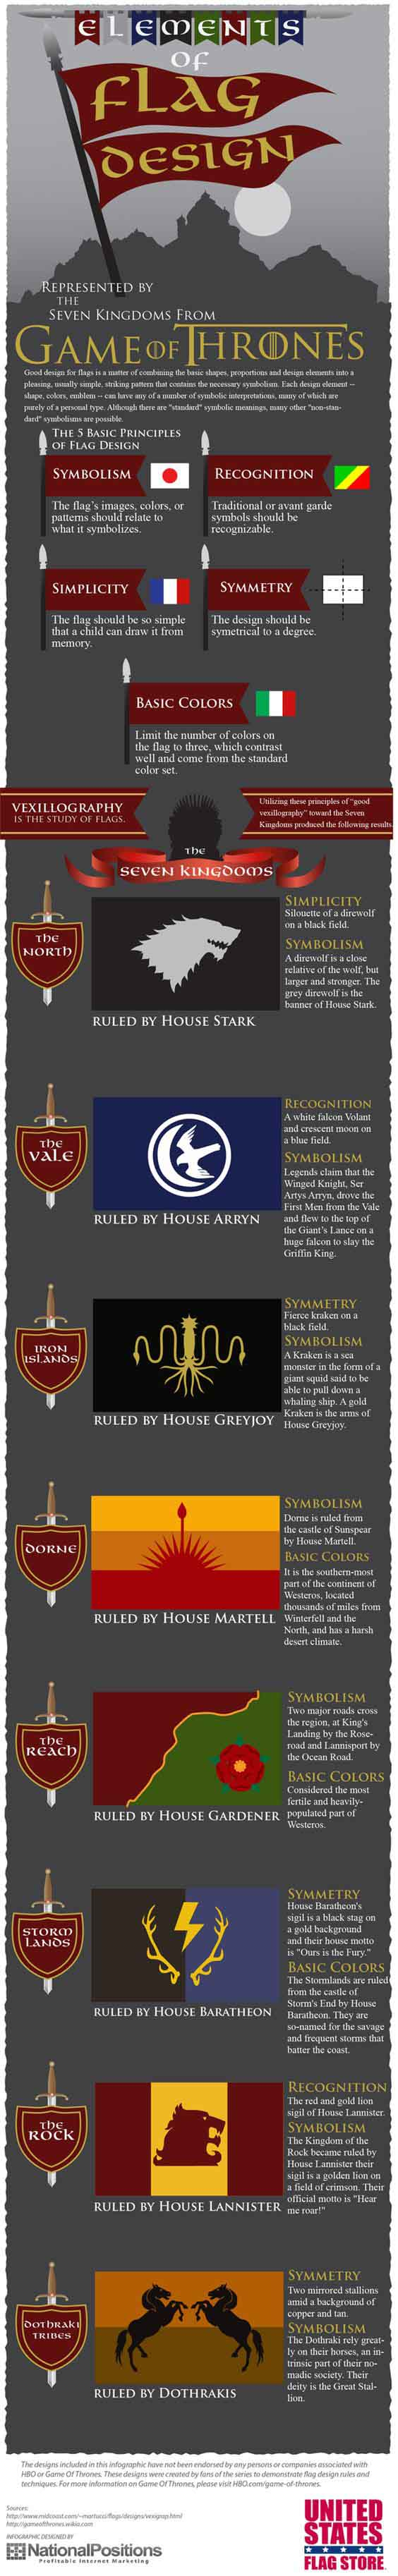 Game of Thrones Flags